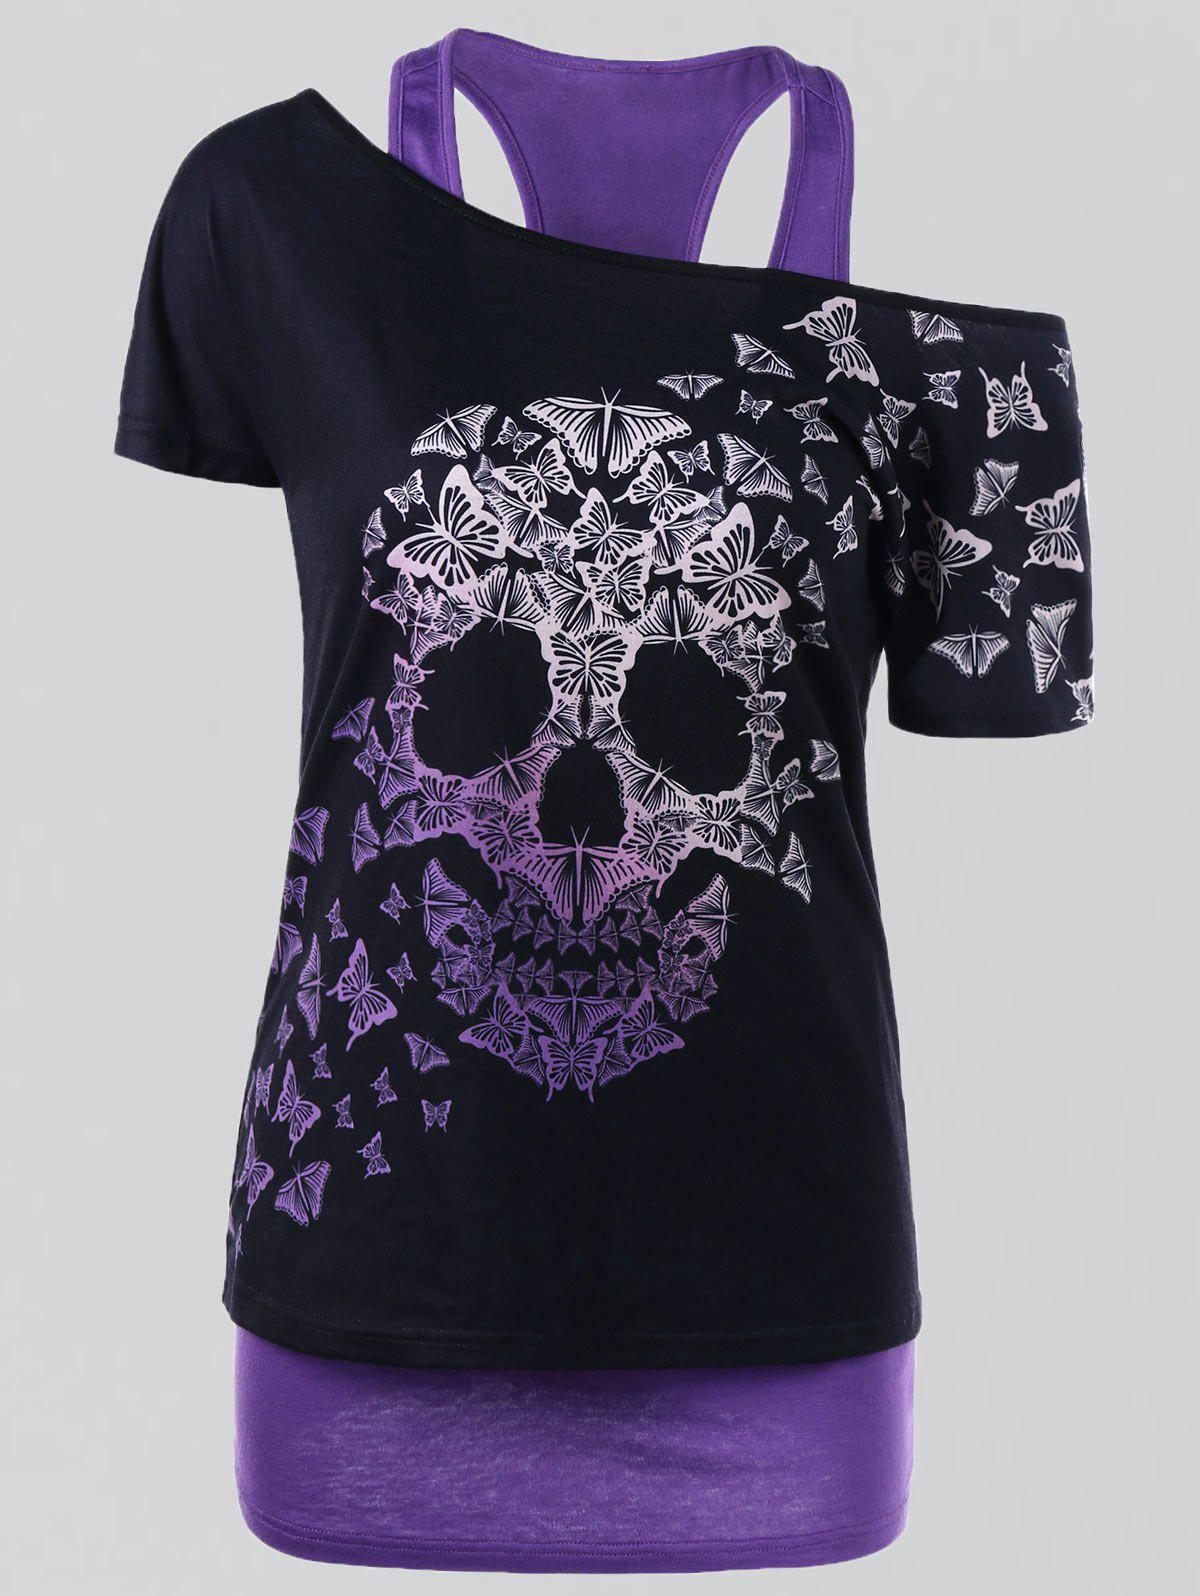 Plus Size Butterfly Skull T-shirt and Tank TopWOMEN<br><br>Size: 3XL; Color: PURPLE; Material: Polyester,Spandex; Shirt Length: Regular; Sleeve Length: Short; Collar: Convertible Collar; Style: Casual; Season: Summer; Pattern Type: Skulls; Weight: 0.3500kg; Package Contents: 1 x T-shirt  1 x Tank Top;